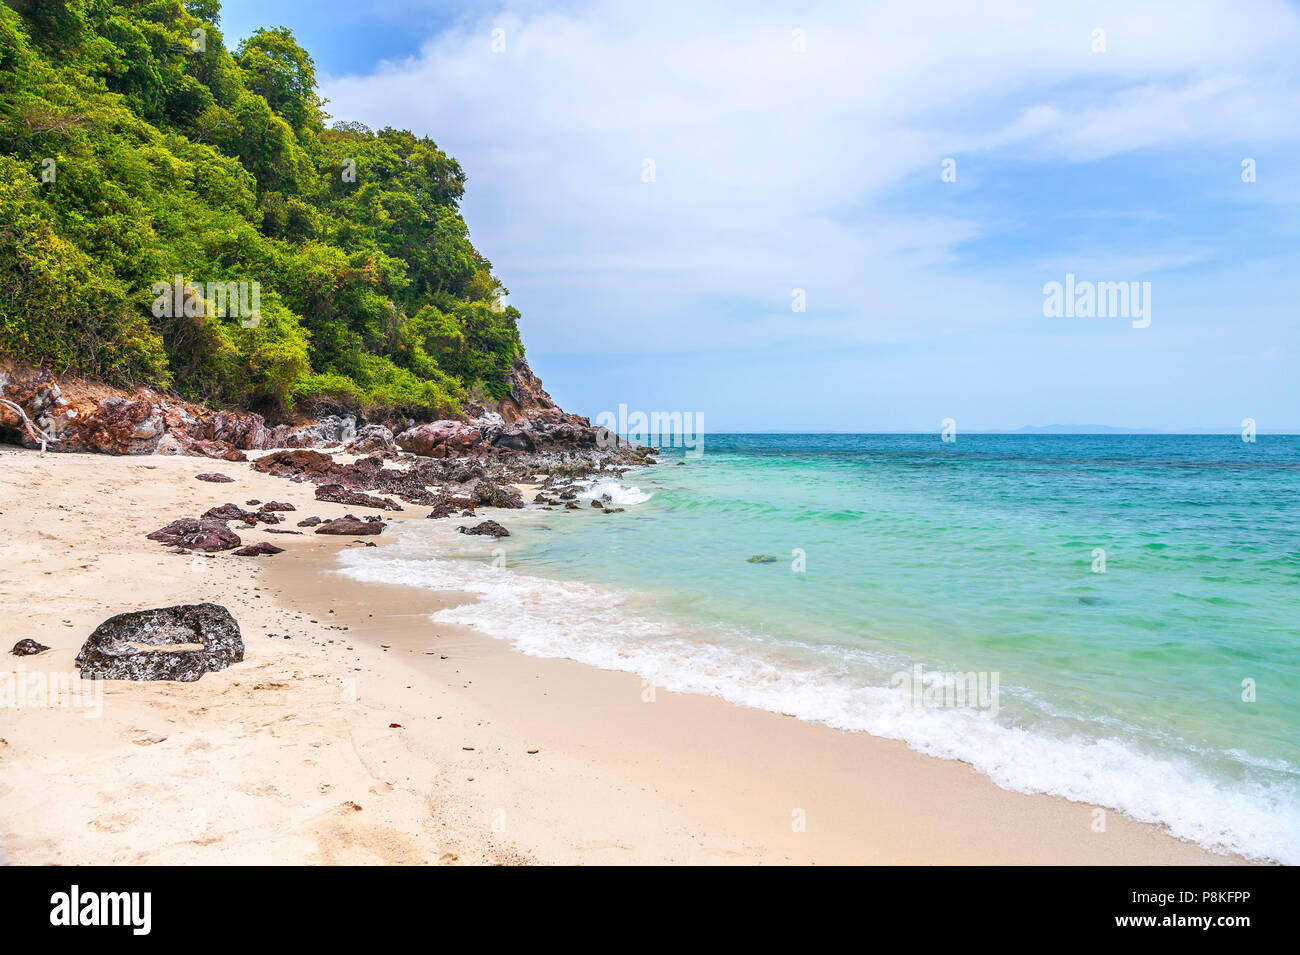 Beautiful sandy beach in Thailand. - Stock Image